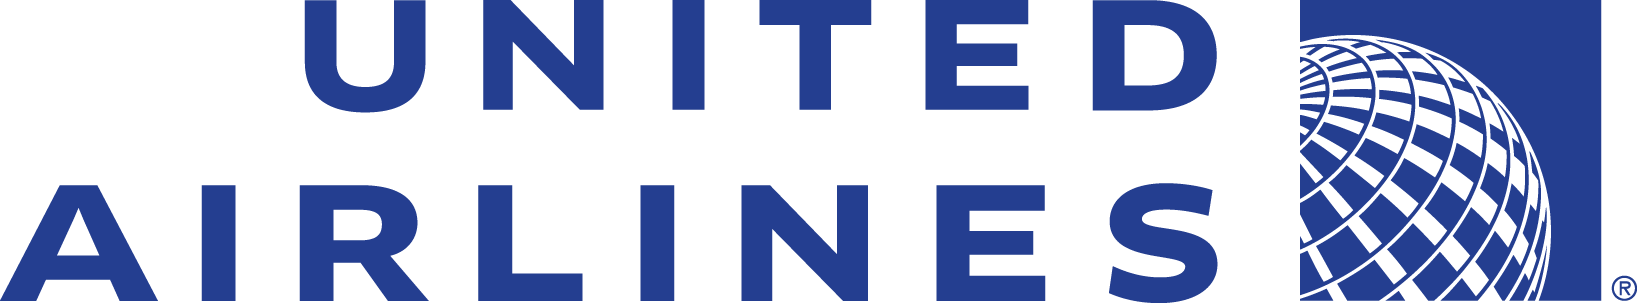 United Airlines Logo Png & Free United Airlines Logo.png Pluspng.com  - United Airlines Logo PNG